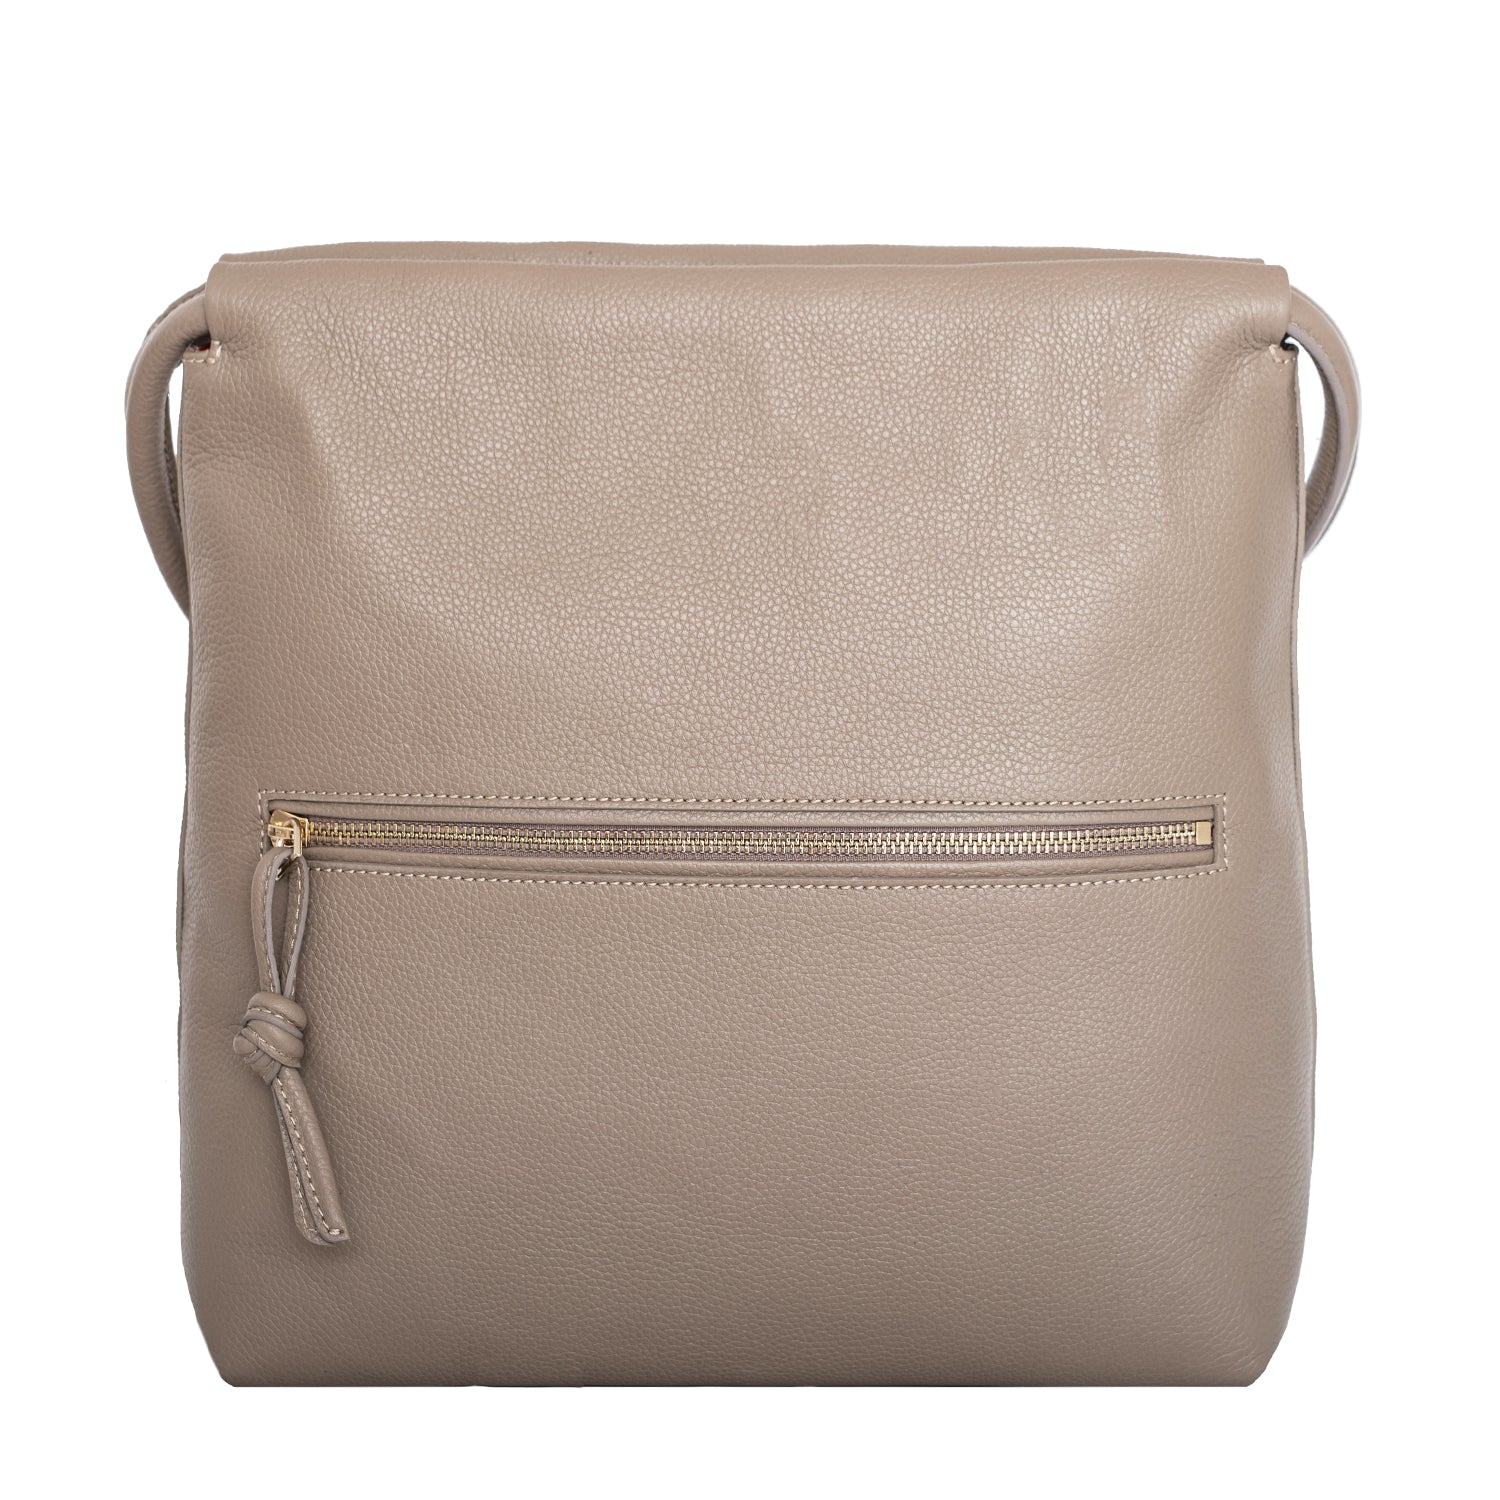 A convertible leather nude shoulder bag for women with a knot detail on the strap that could be used as a clutch bag with its roll down feature, back image.